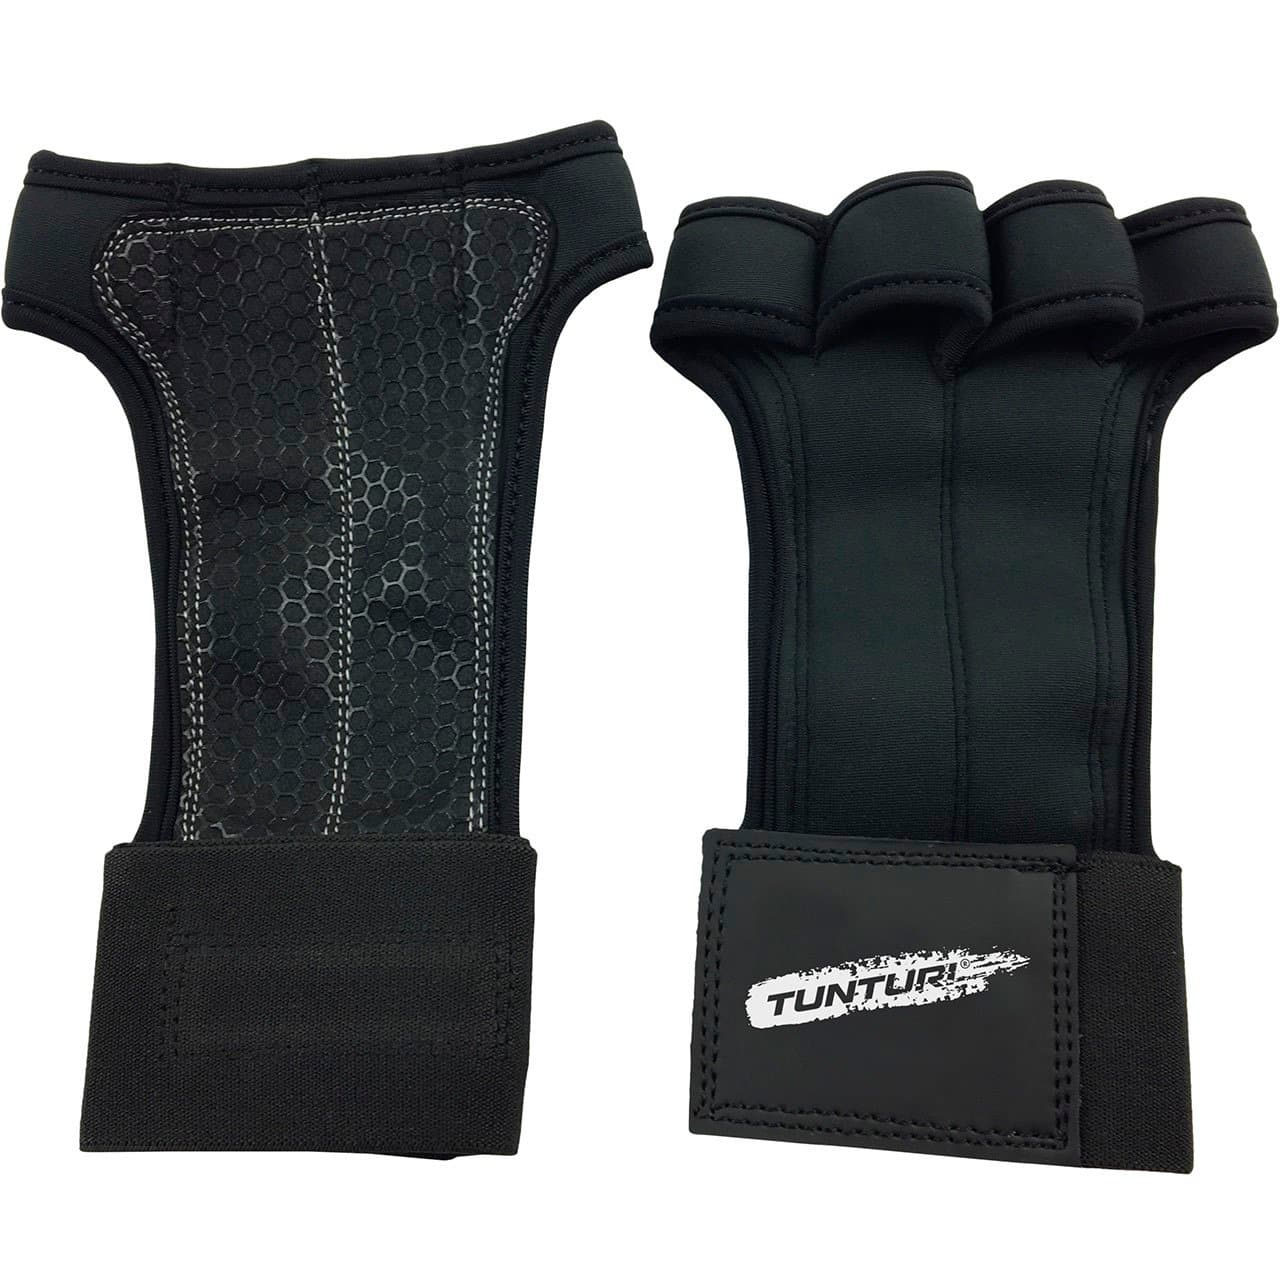 Tunturi Cross Fit Silikon Handschuhe